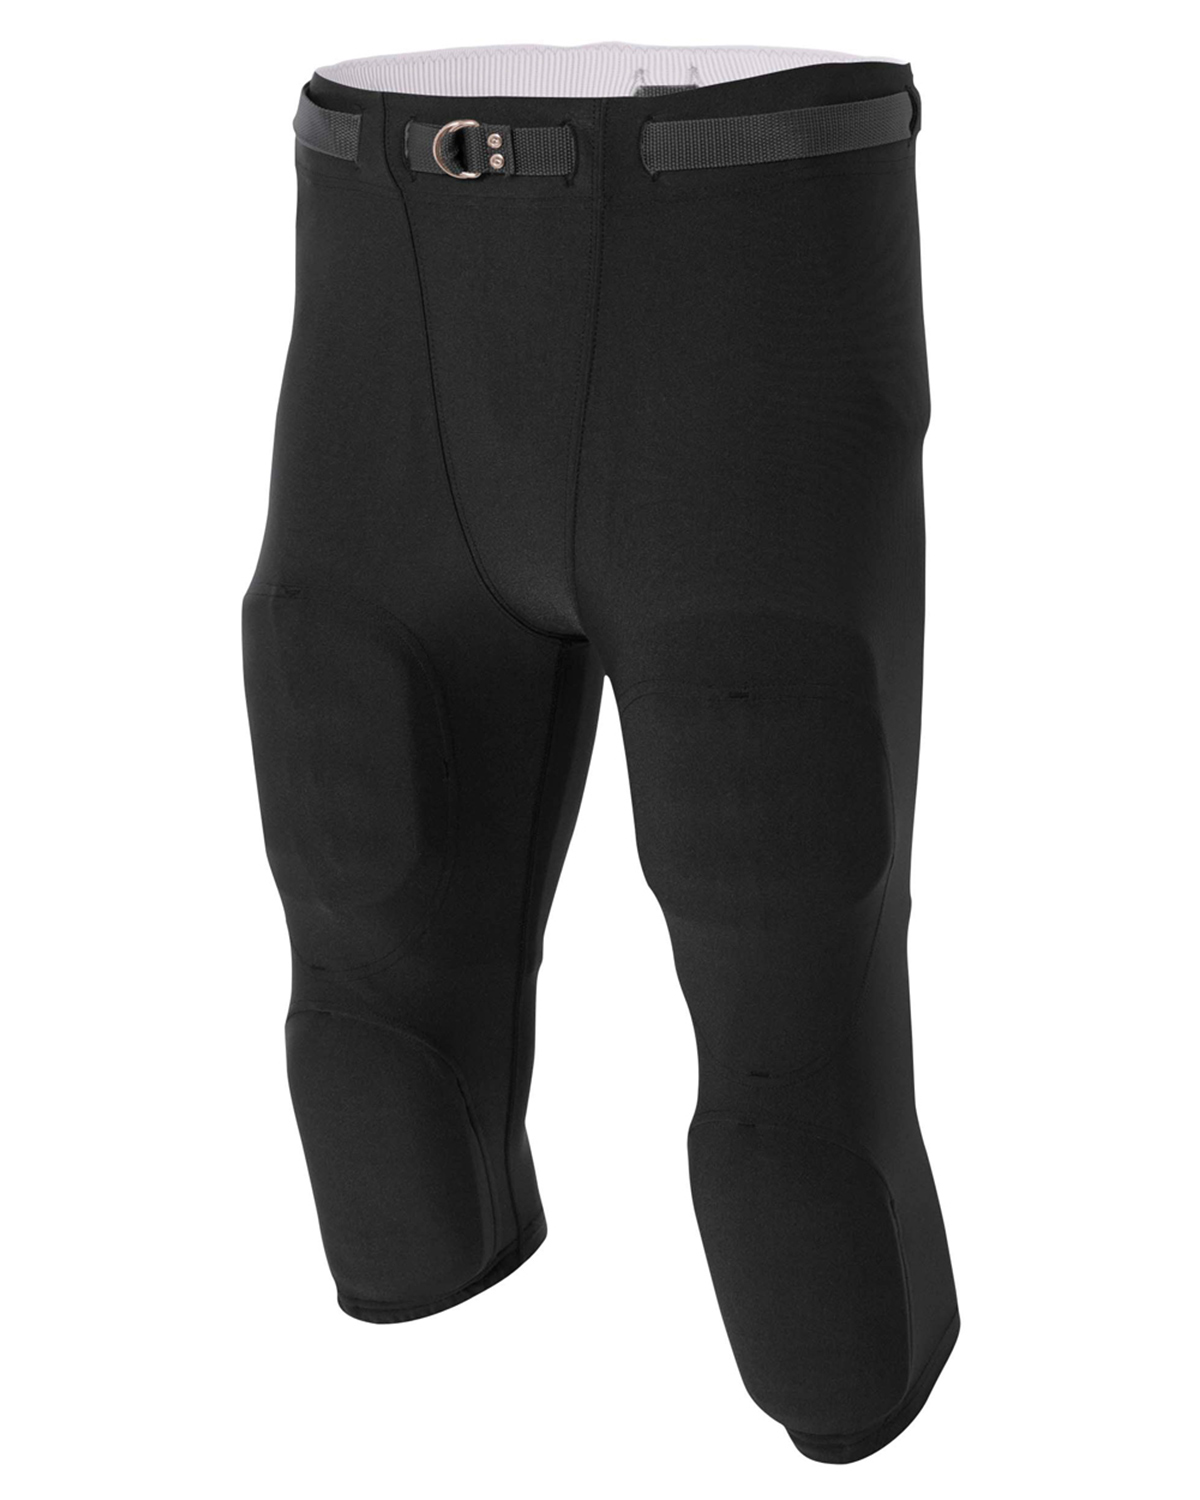 A4 Drop Ship N6181 - Men's Flyless Football Pants